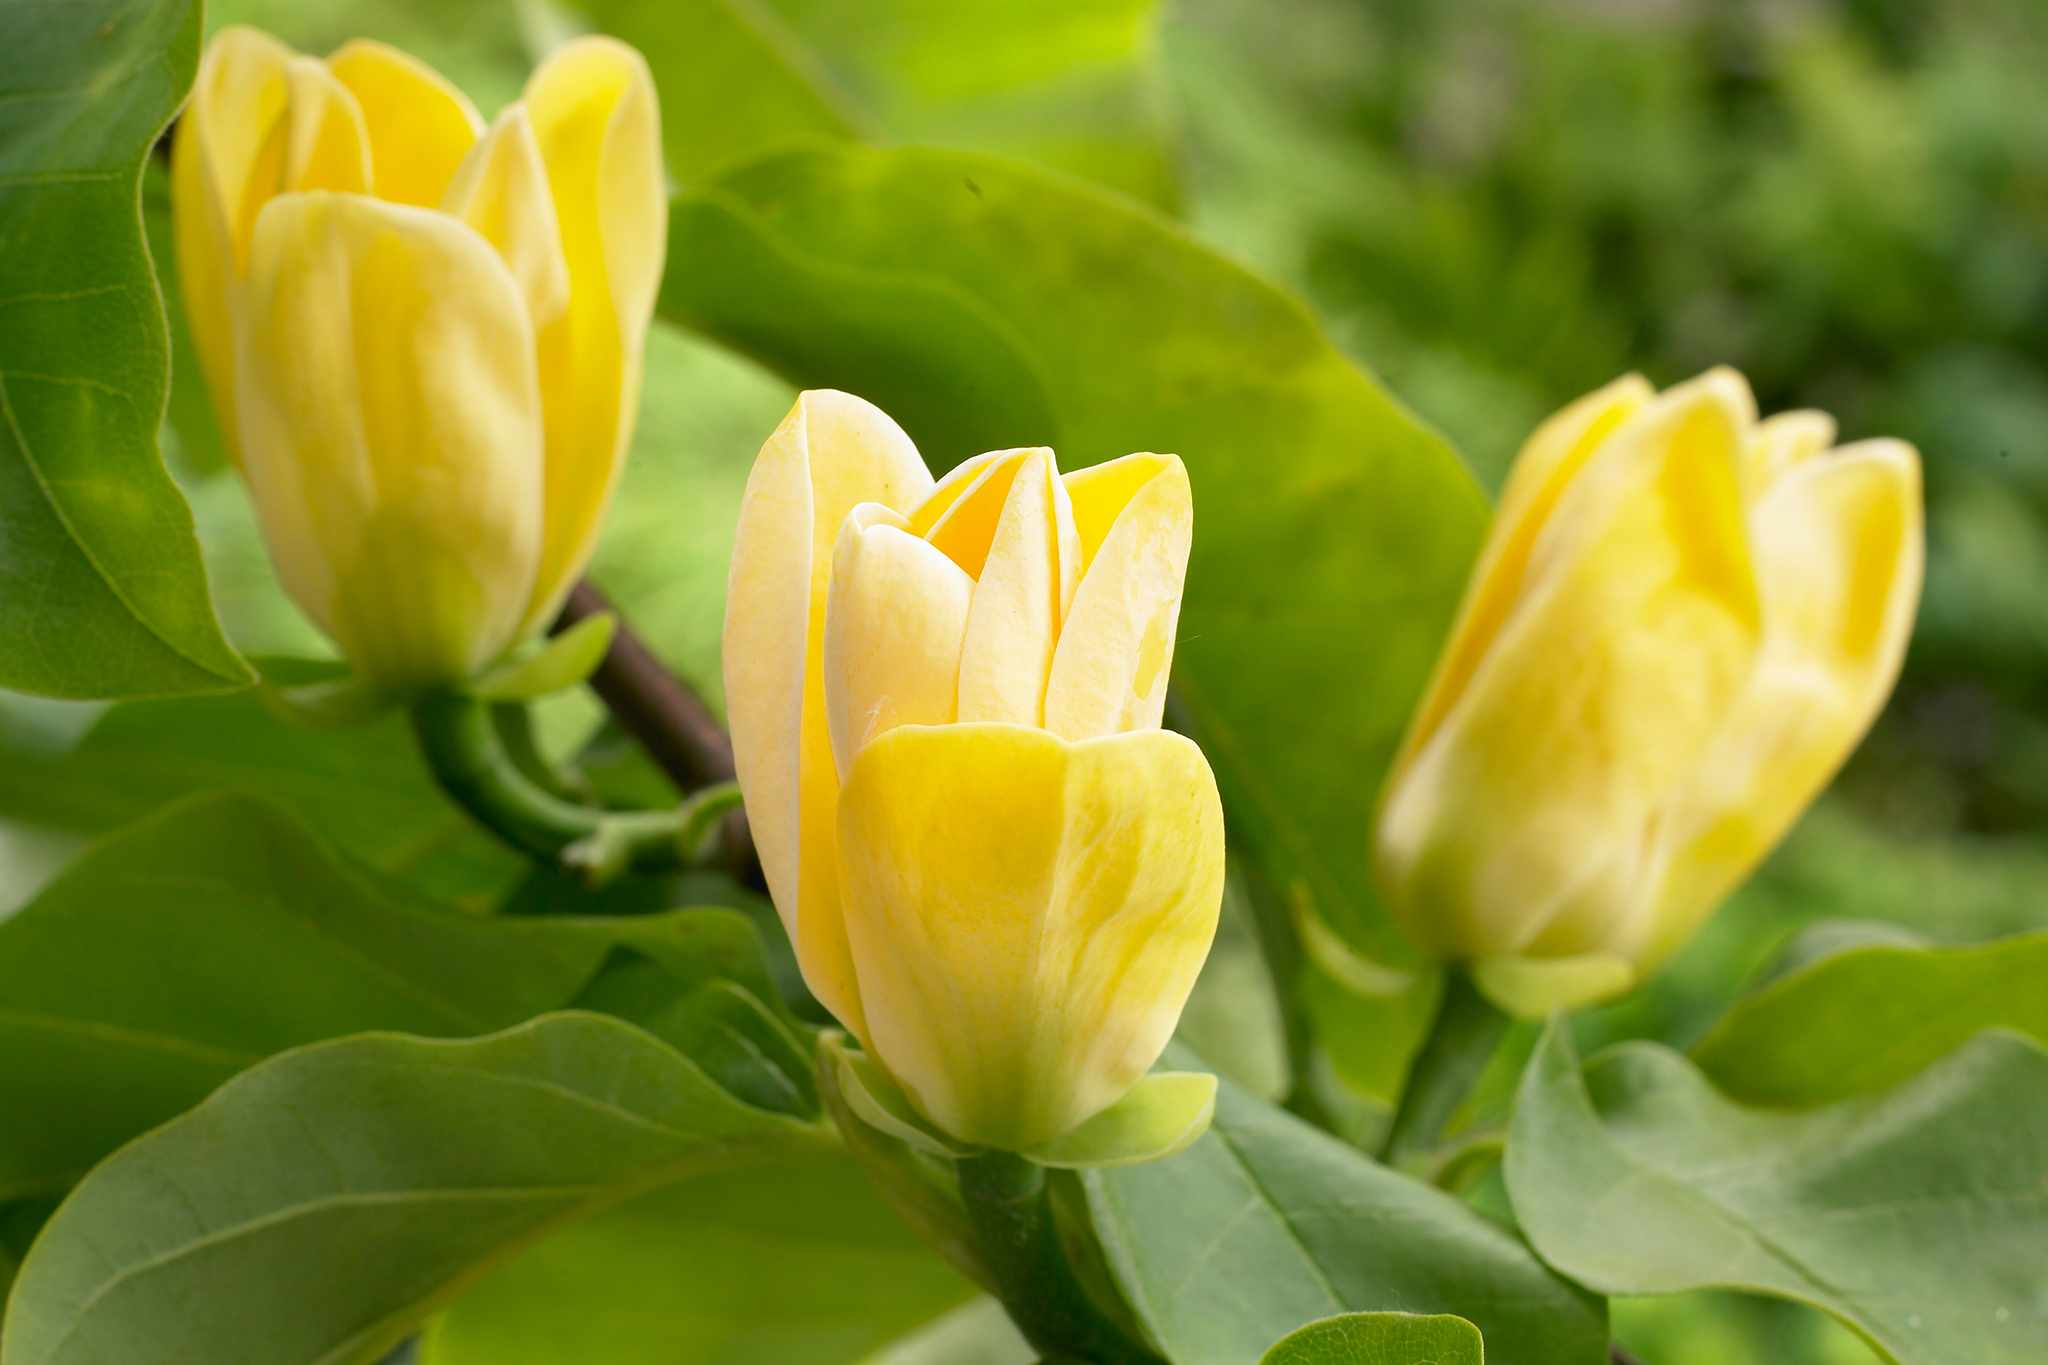 blooming-direct-magnolia-yellow-bird-bogof-2048-1365